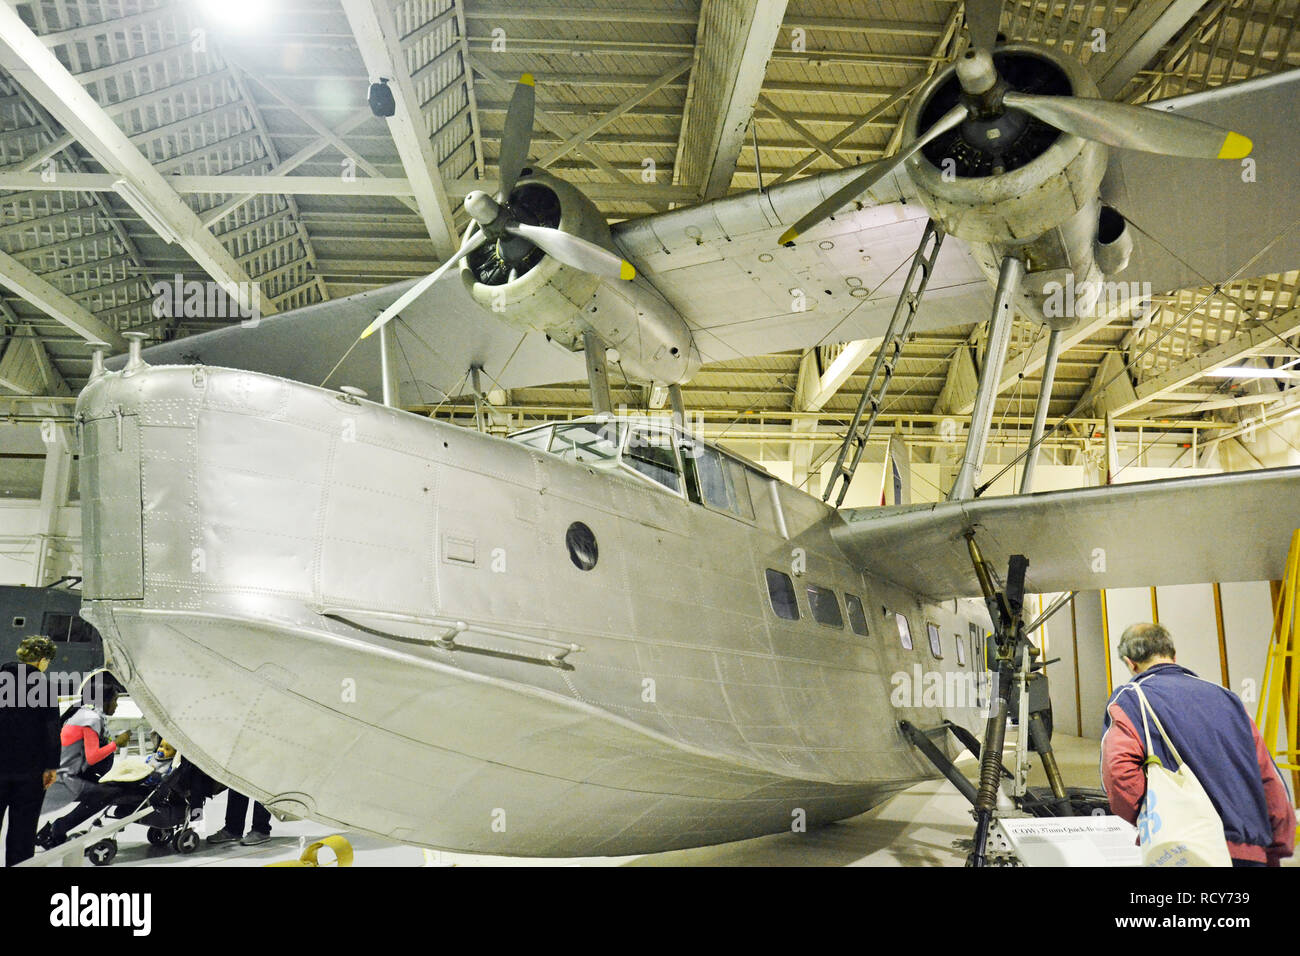 Stranraer Flying Boat, WWII Military Aircraft on display at the RAF Museum, London, UK - Stock Image